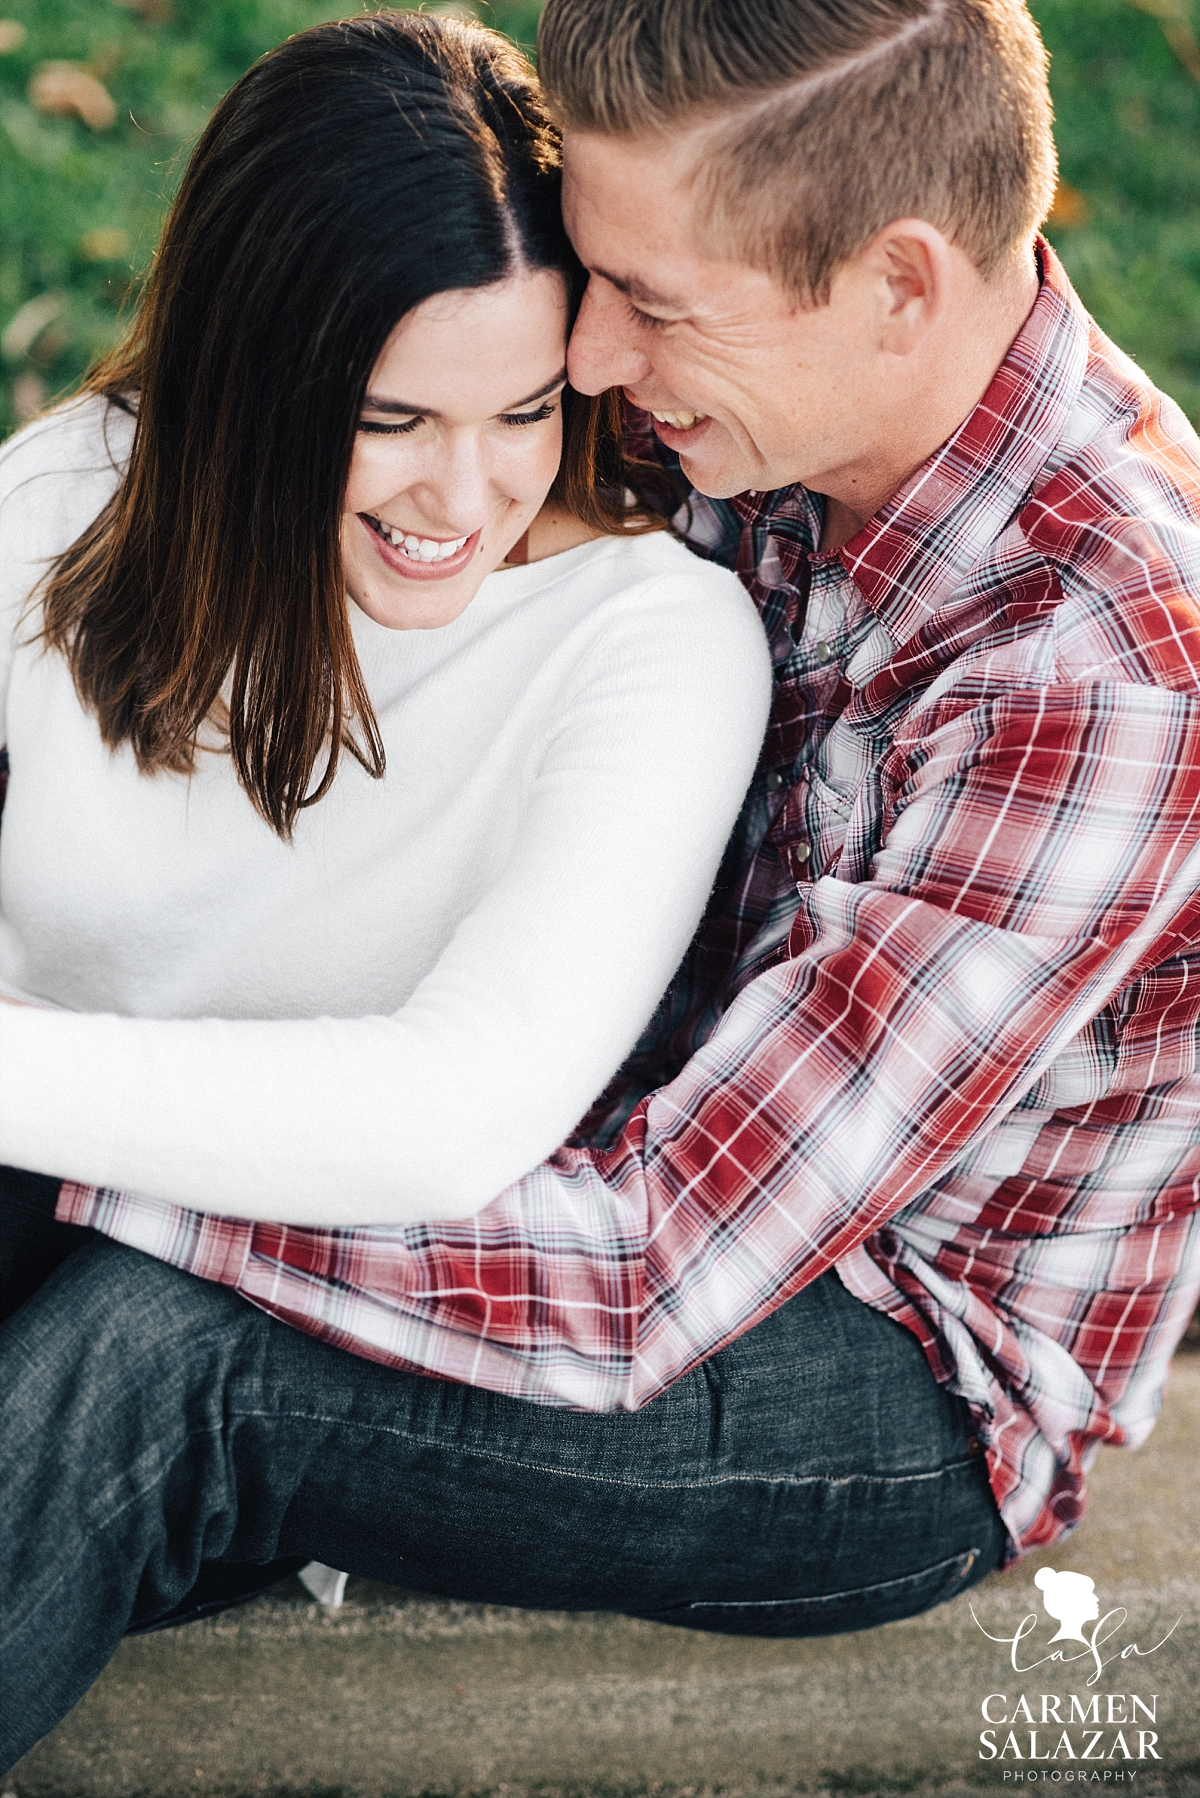 Romantic and casual engagement photography - Carmen Salazar